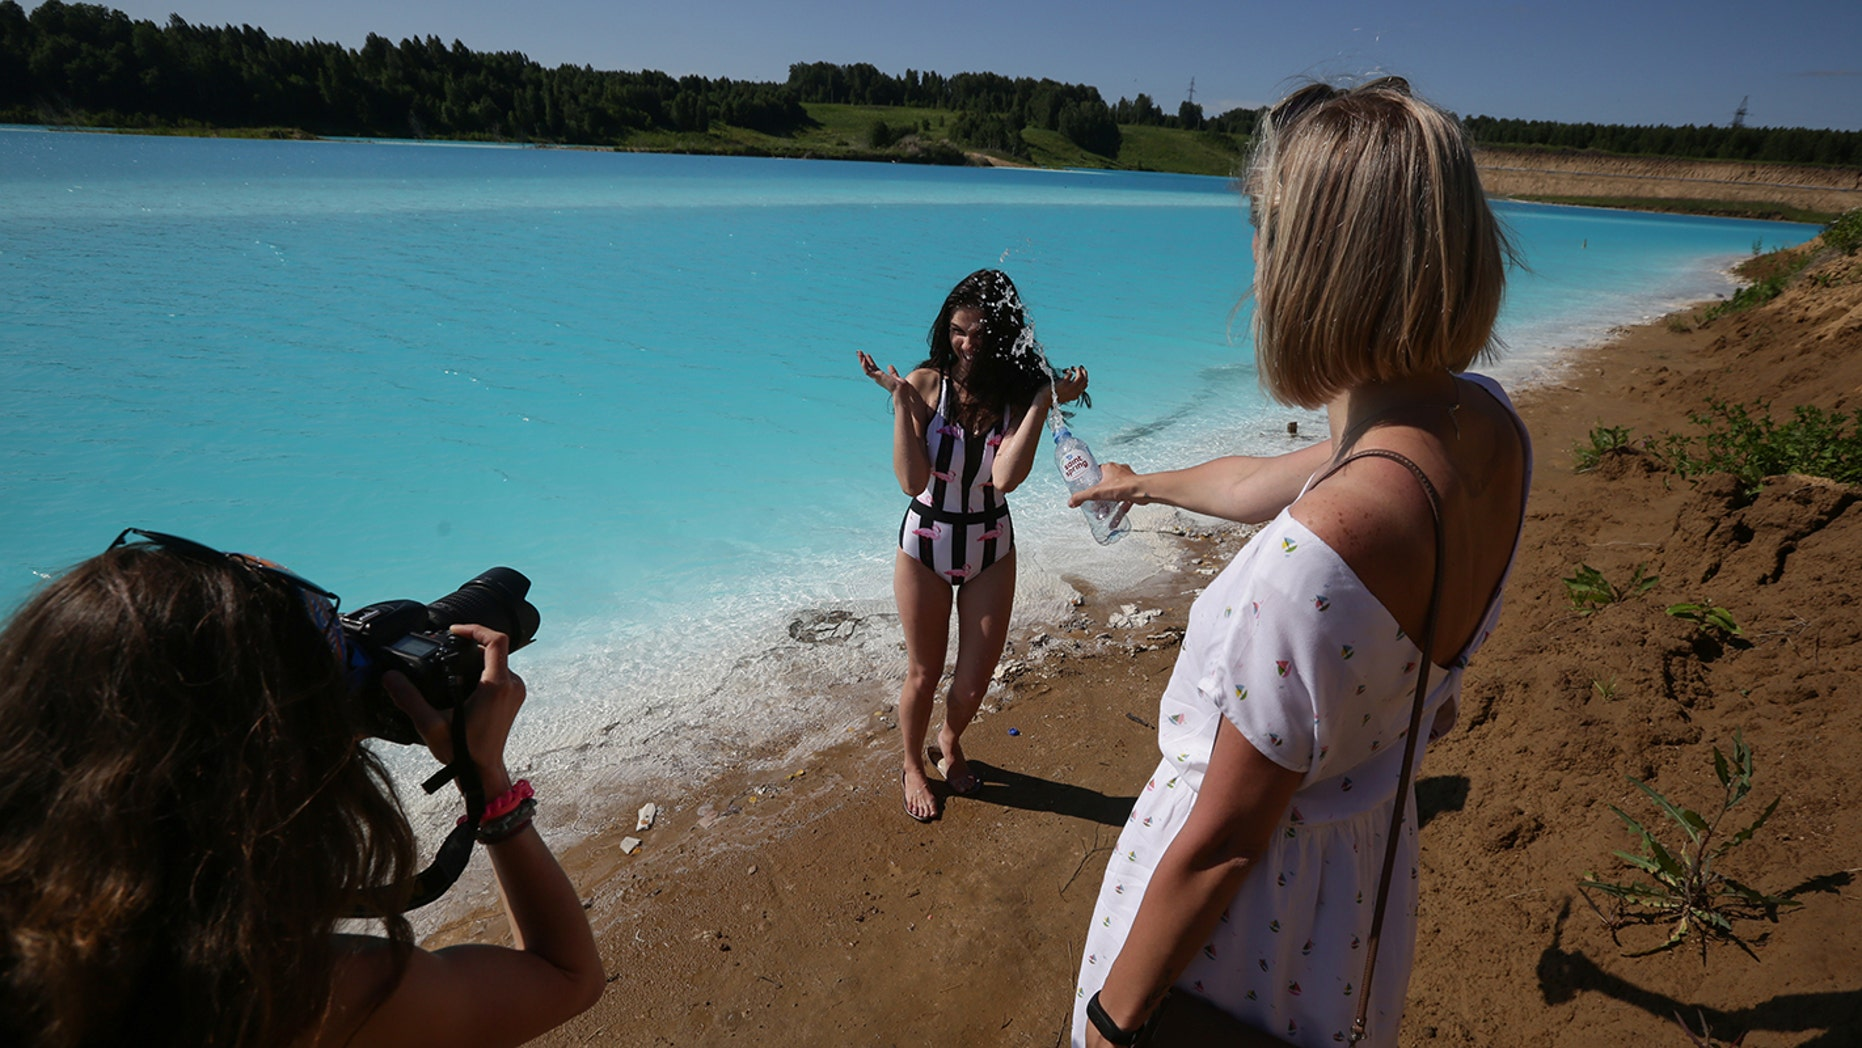 "A young woman poses for pictures by a Novosibirsk energy plant's ash dump site - nicknamed the local ""Maldives"" - on July 11, 2019. - An industrial dump site in Siberia whose turquoise lake resembles a tropical paradise has become a magnet for Instagrammers who risk their health in the toxic water to wow online followers."